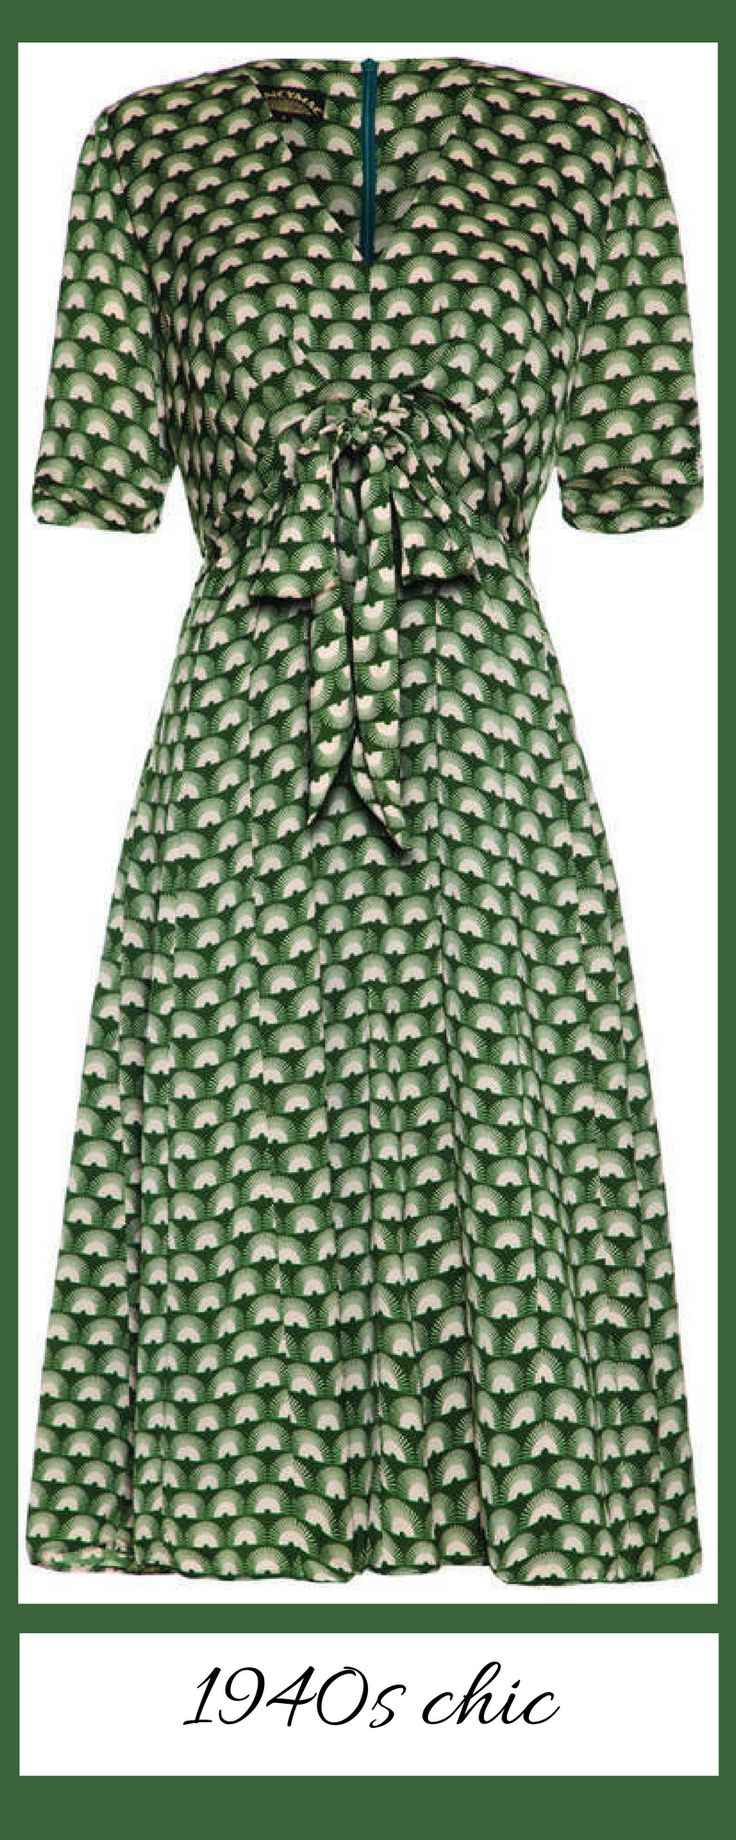 1940s dress - high waist - bow - geometric print - green - nice!